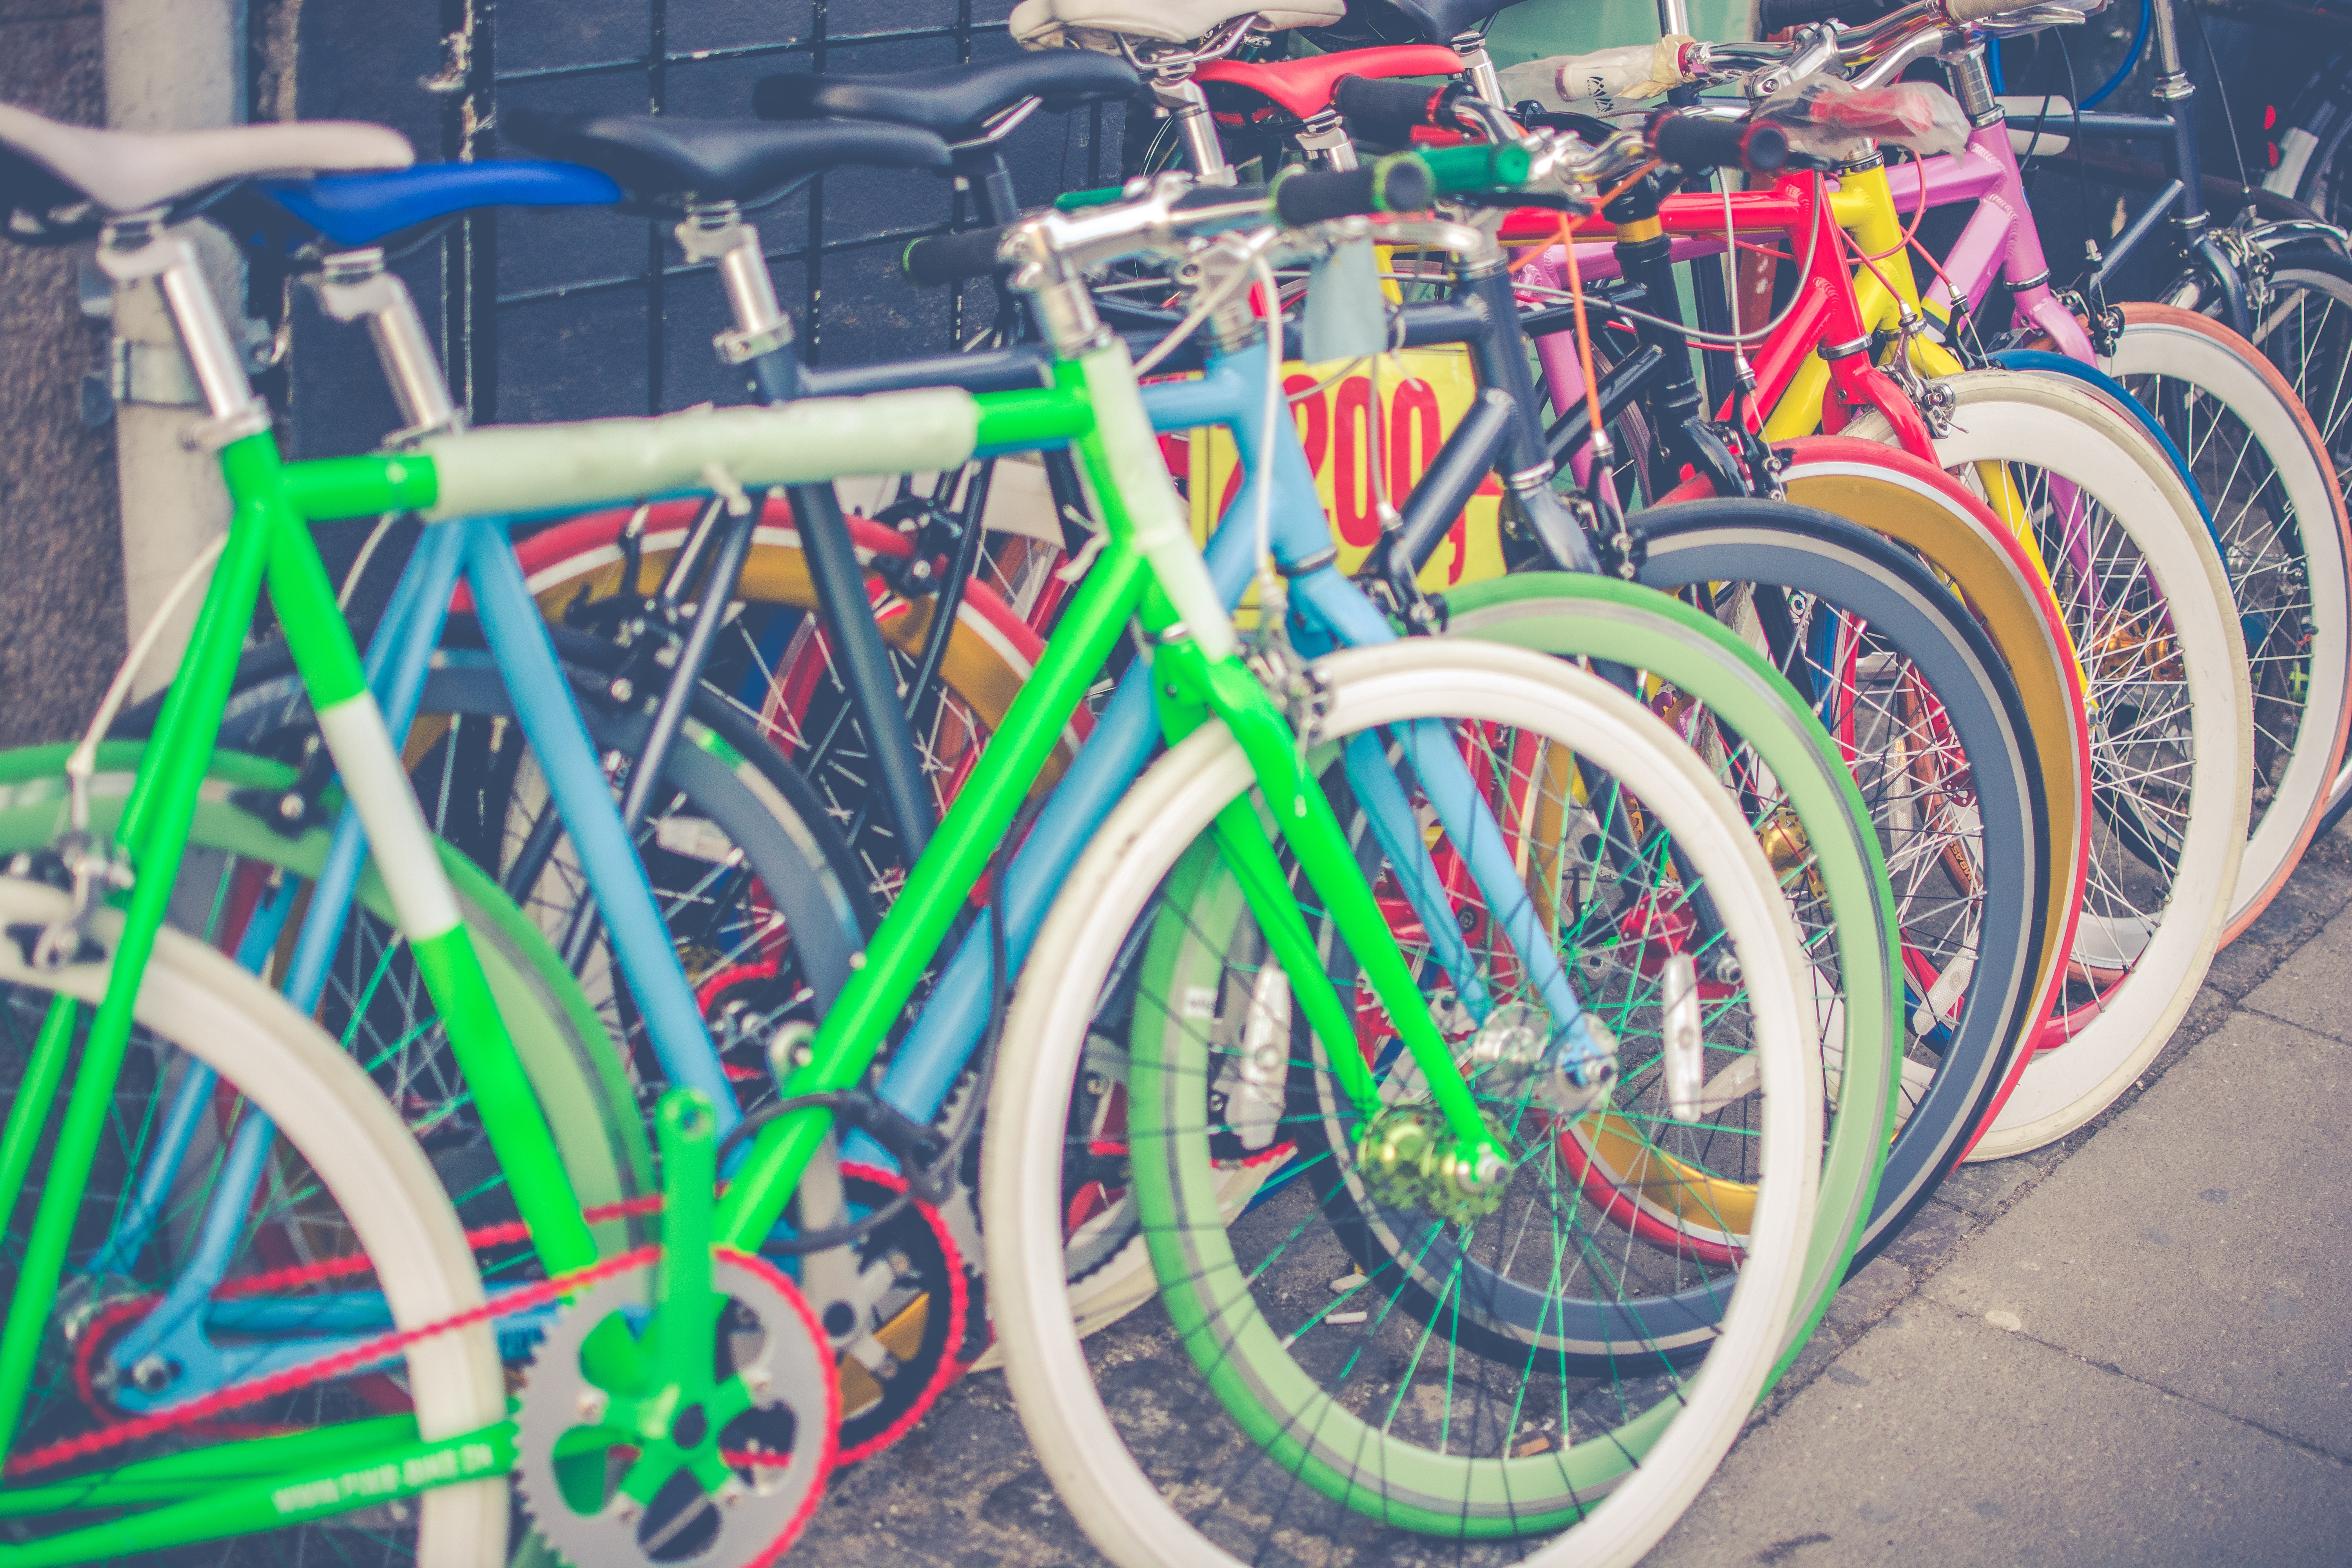 bicycles_parking_multicolored_115541_6000x4000